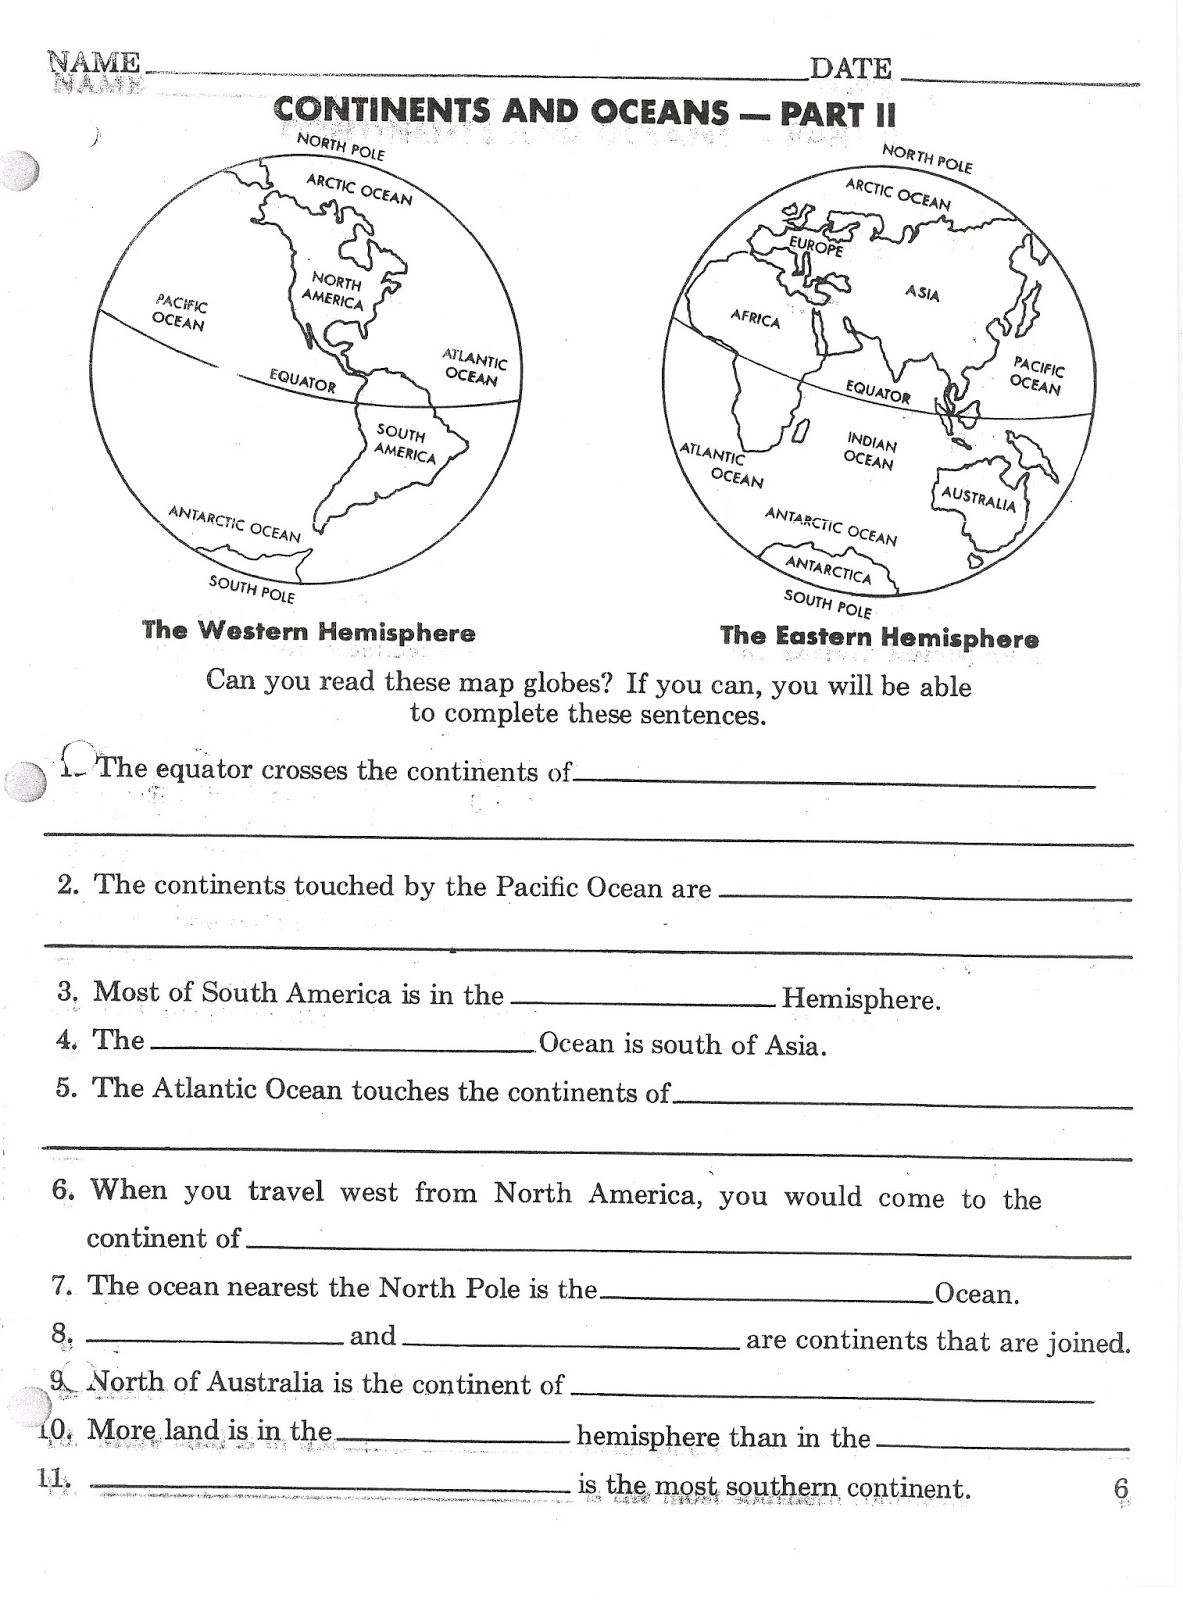 Continent Activity Worksheet